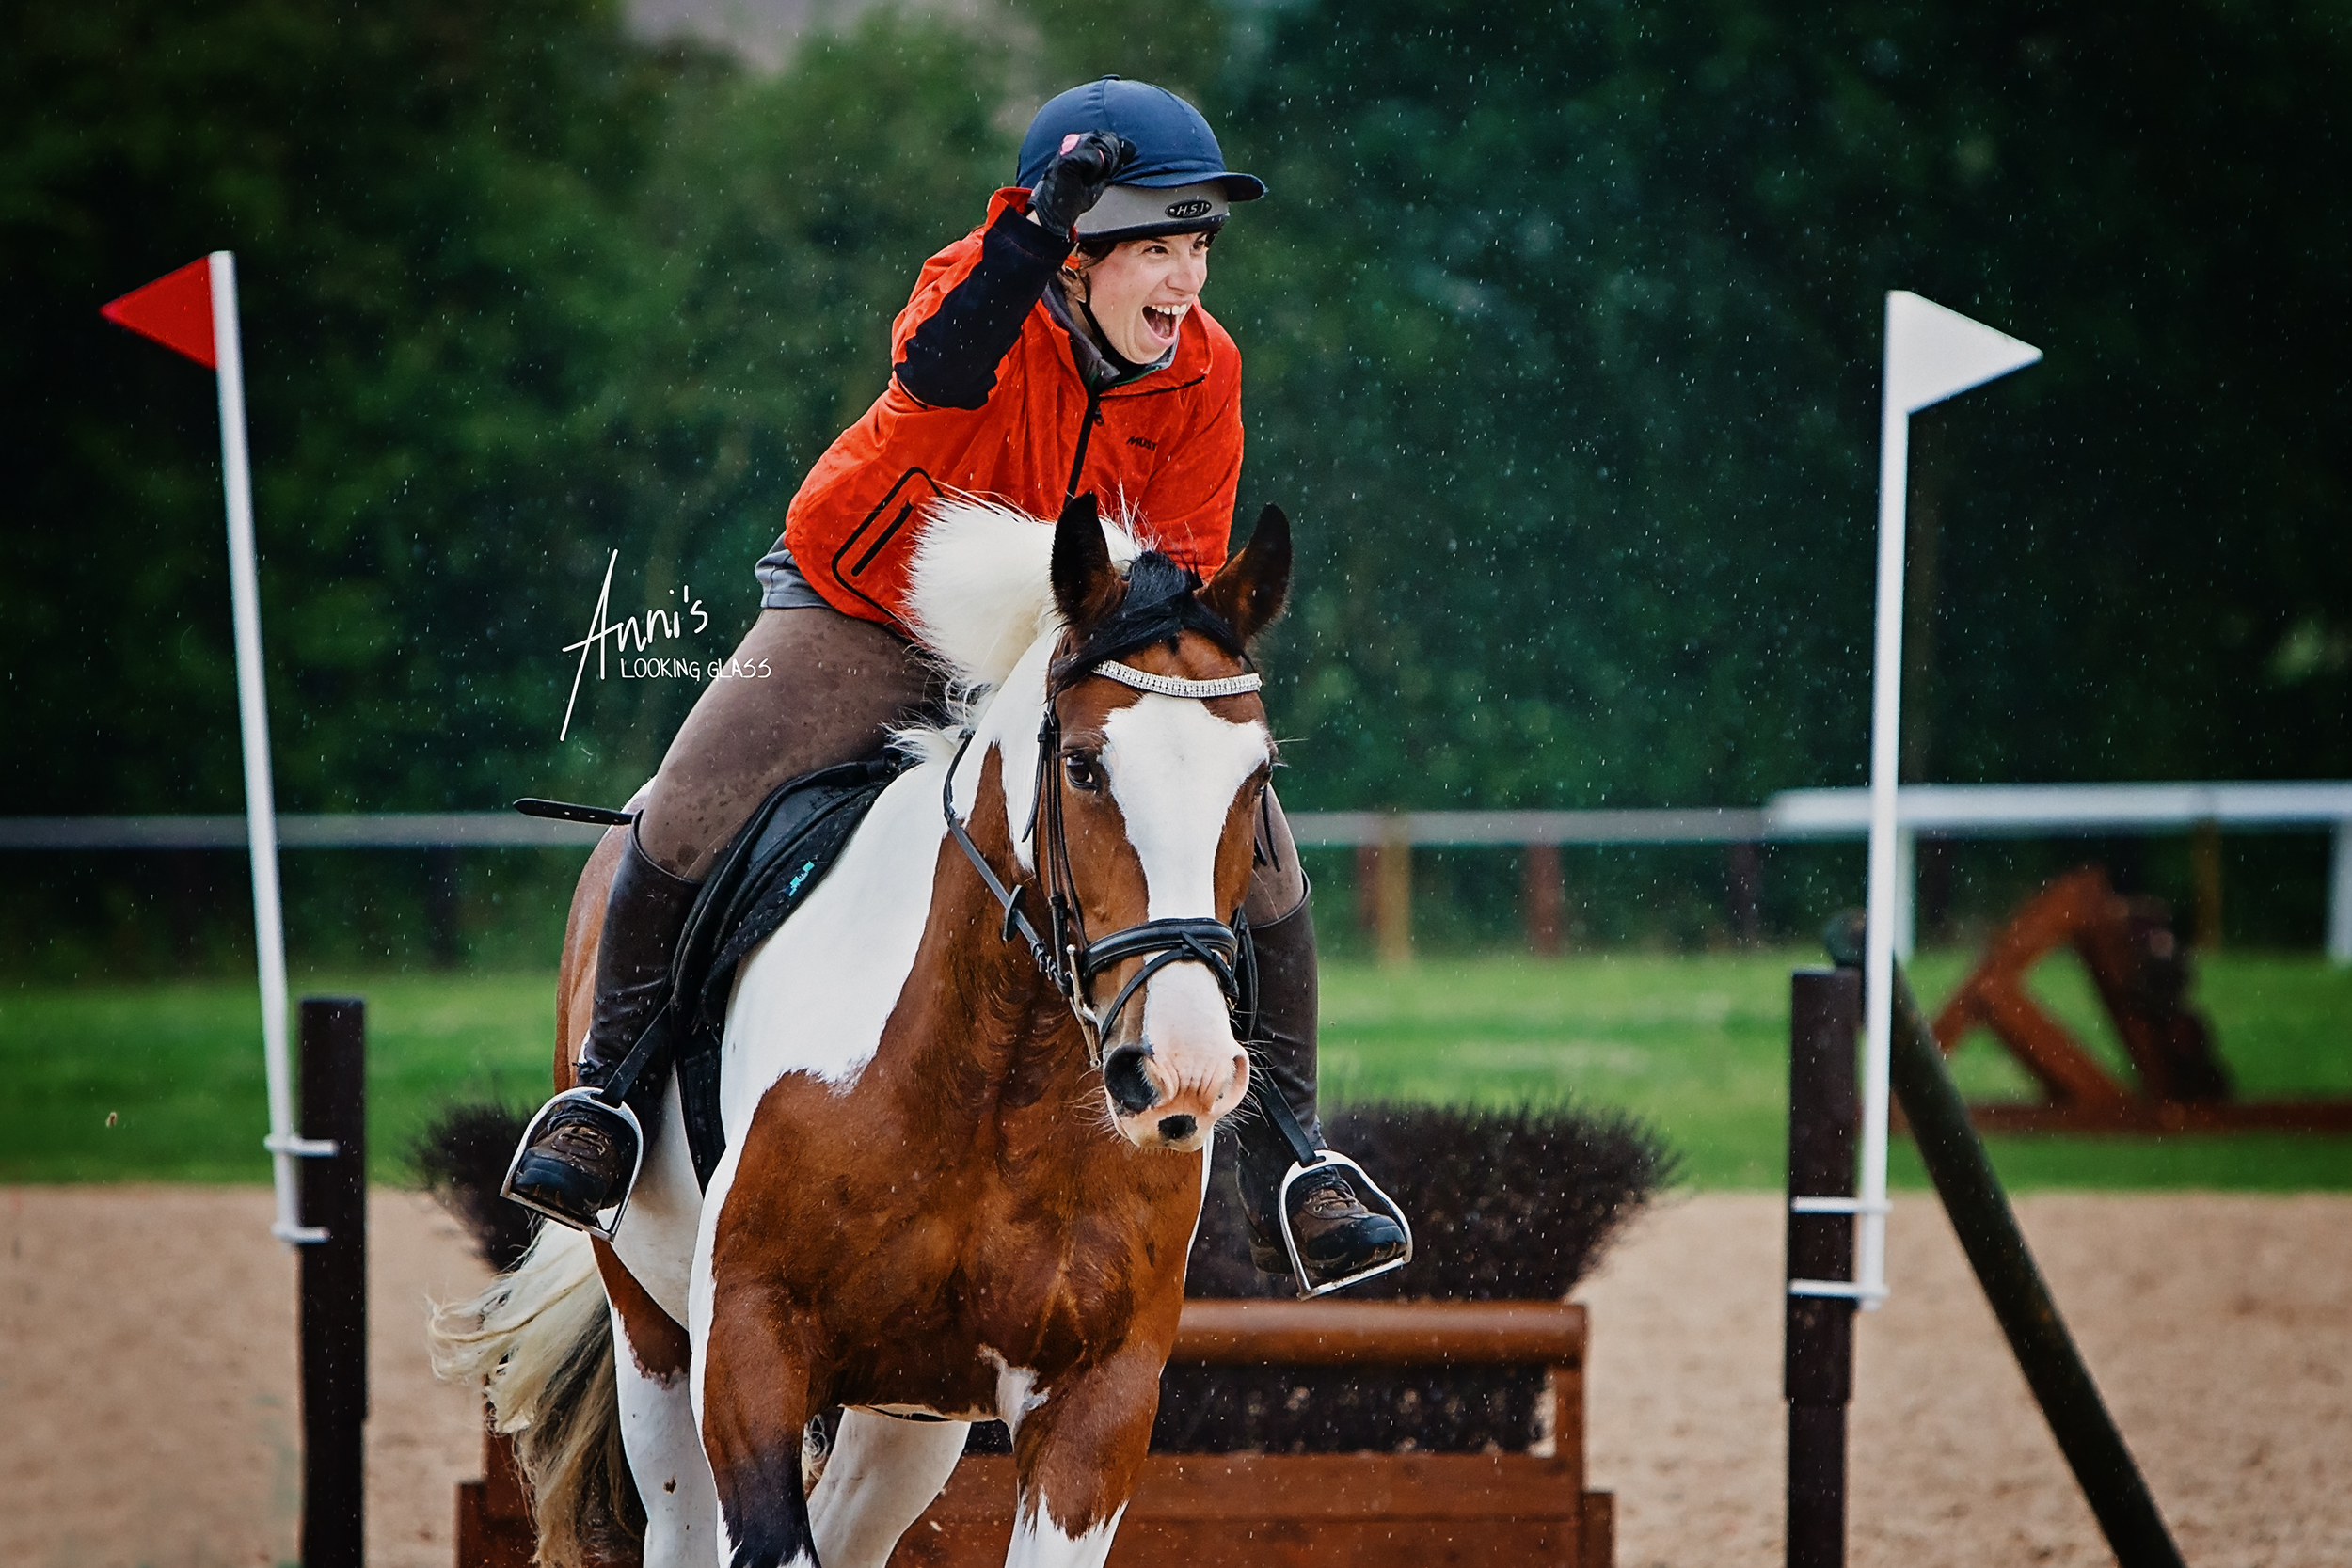 eventing-equine-horse-sports-photography.jpg